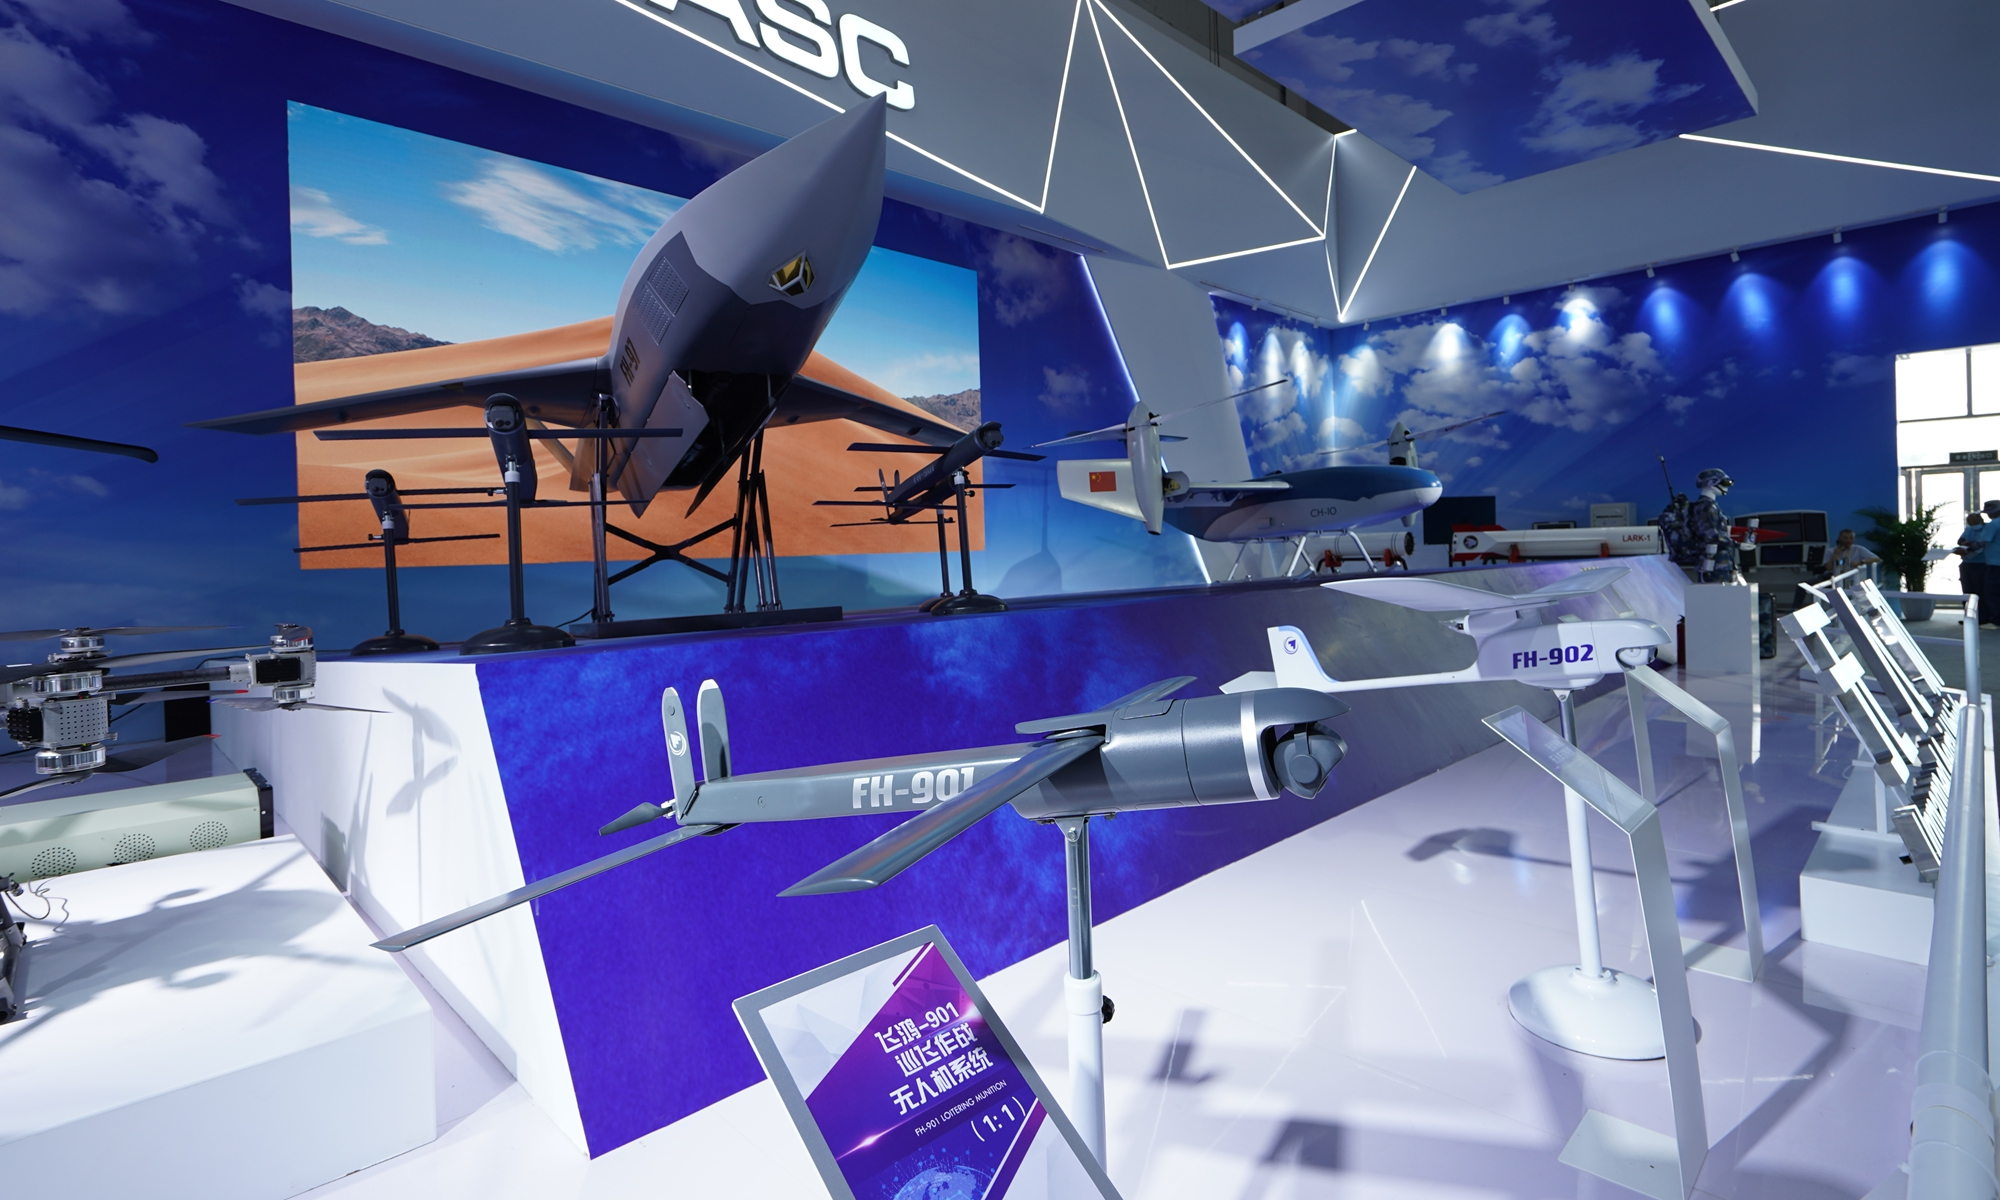 Fei Hong series UAVs are displayed at Airshow China 2021 in Zhuhai, South China's Guangdong Province. Photo: Courtesy of China Aerospace Science and Technology Corporation